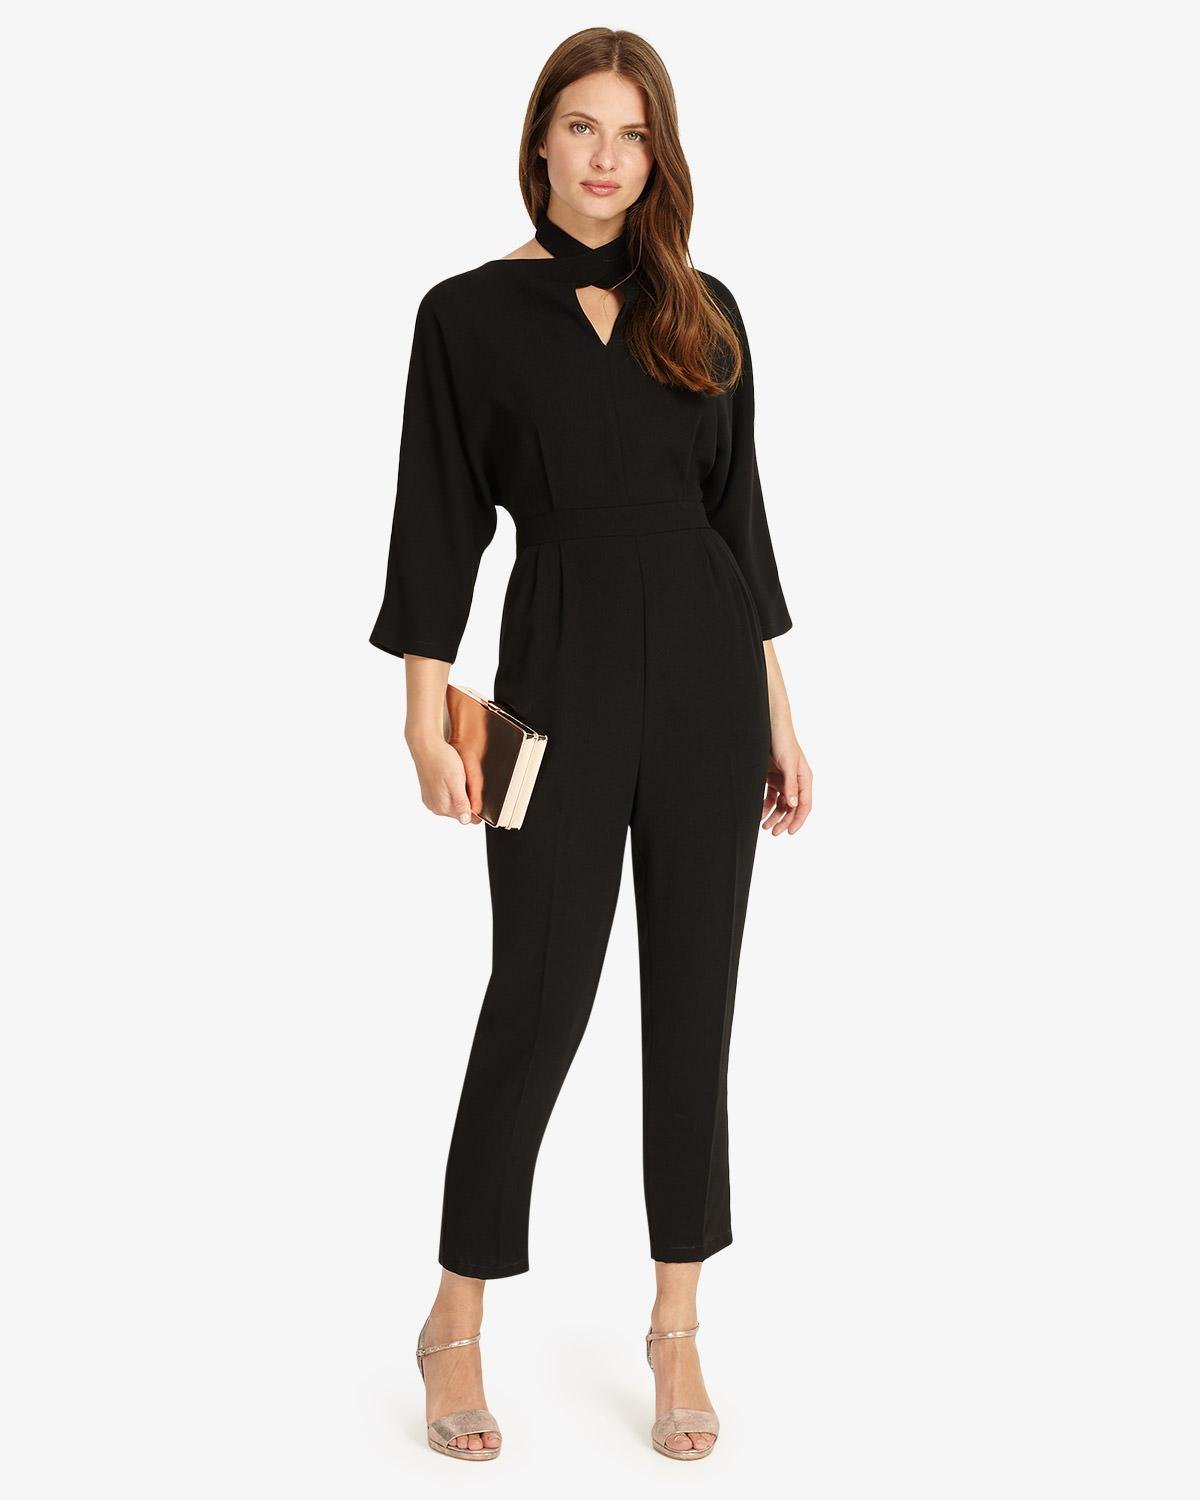 8efa6dc8960 Phase Eight Black Tia 3 4 Sleeves Jumpsuit in Black - Save 28% - Lyst